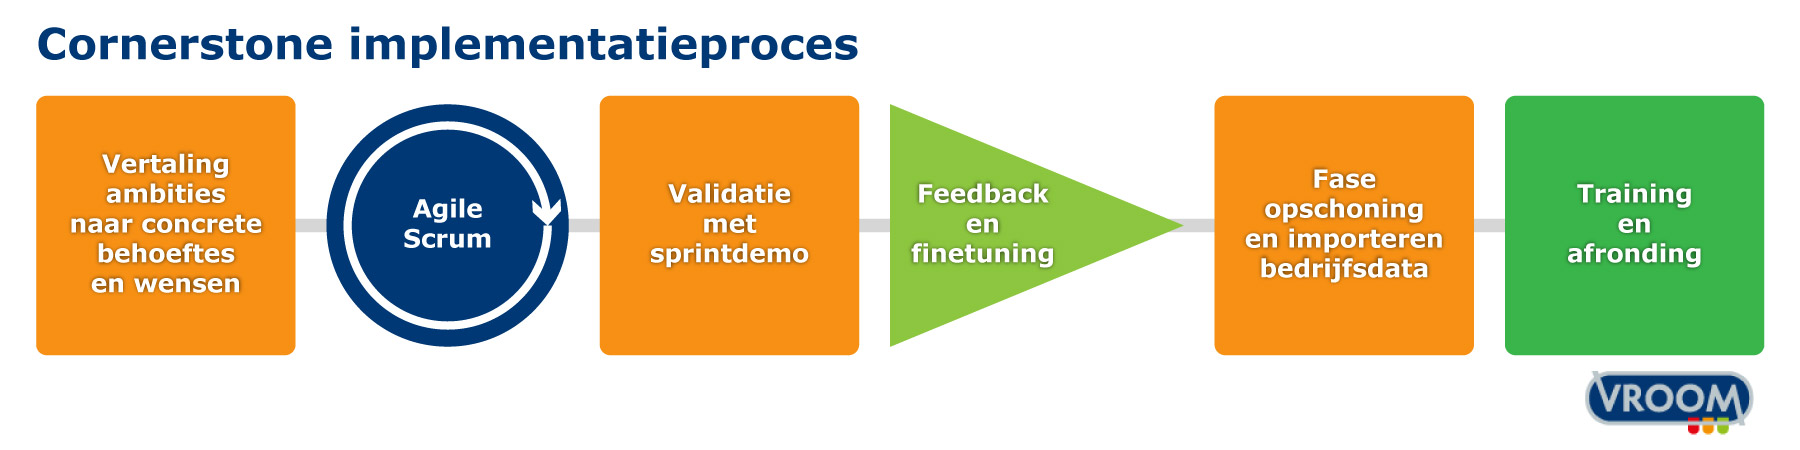 Proces Cornerstone implementatie